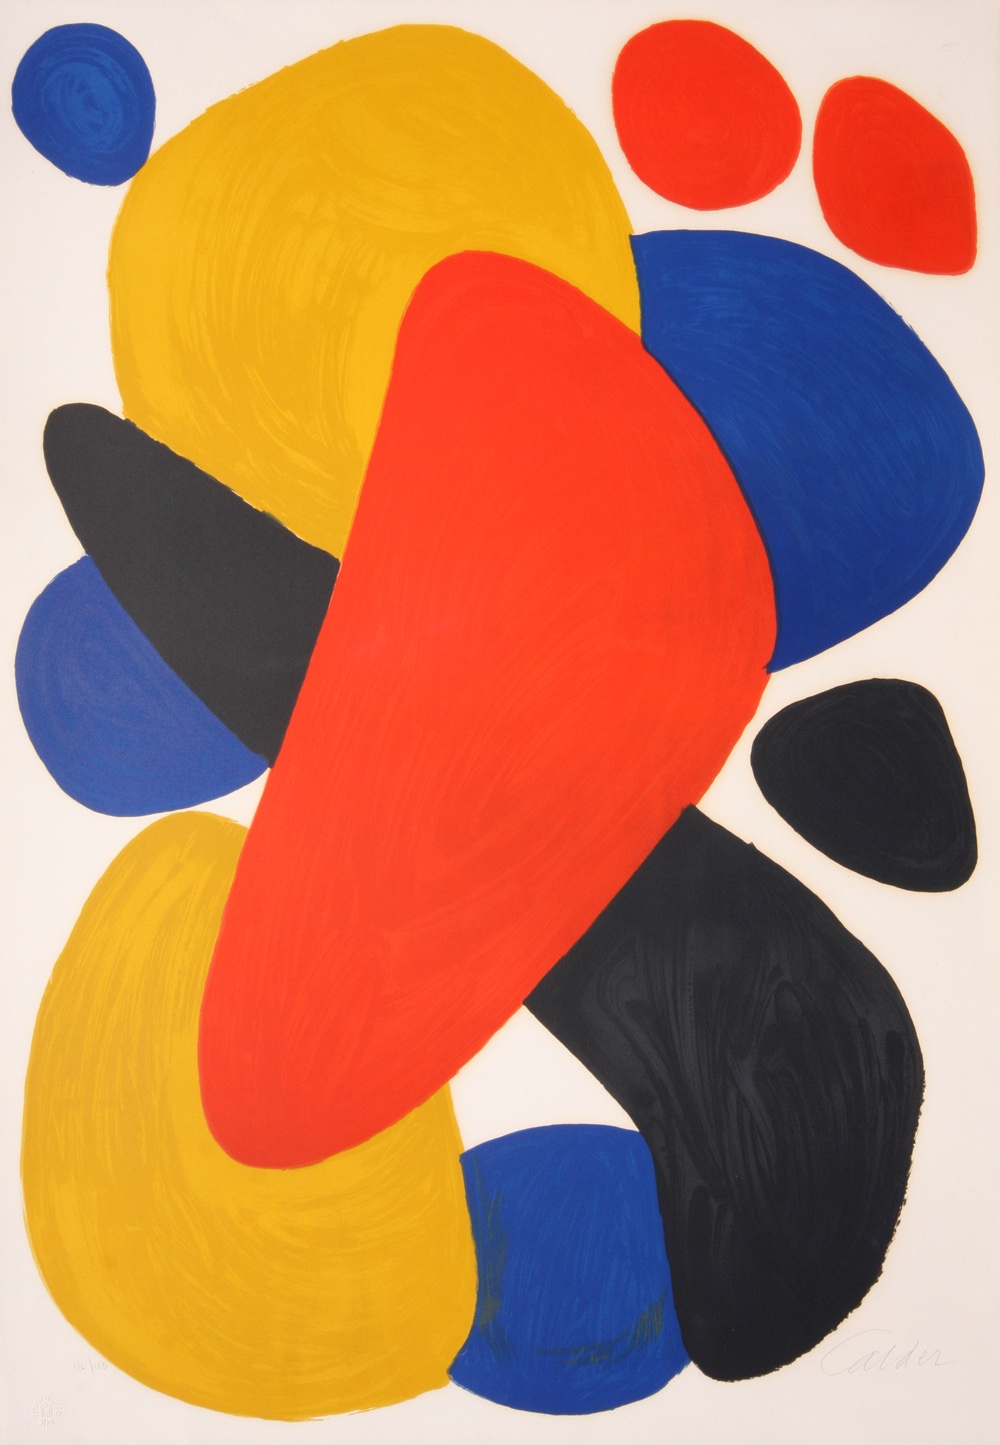 ABSTRACT COMPOSITION WITH RED, YELLOW, BLUE